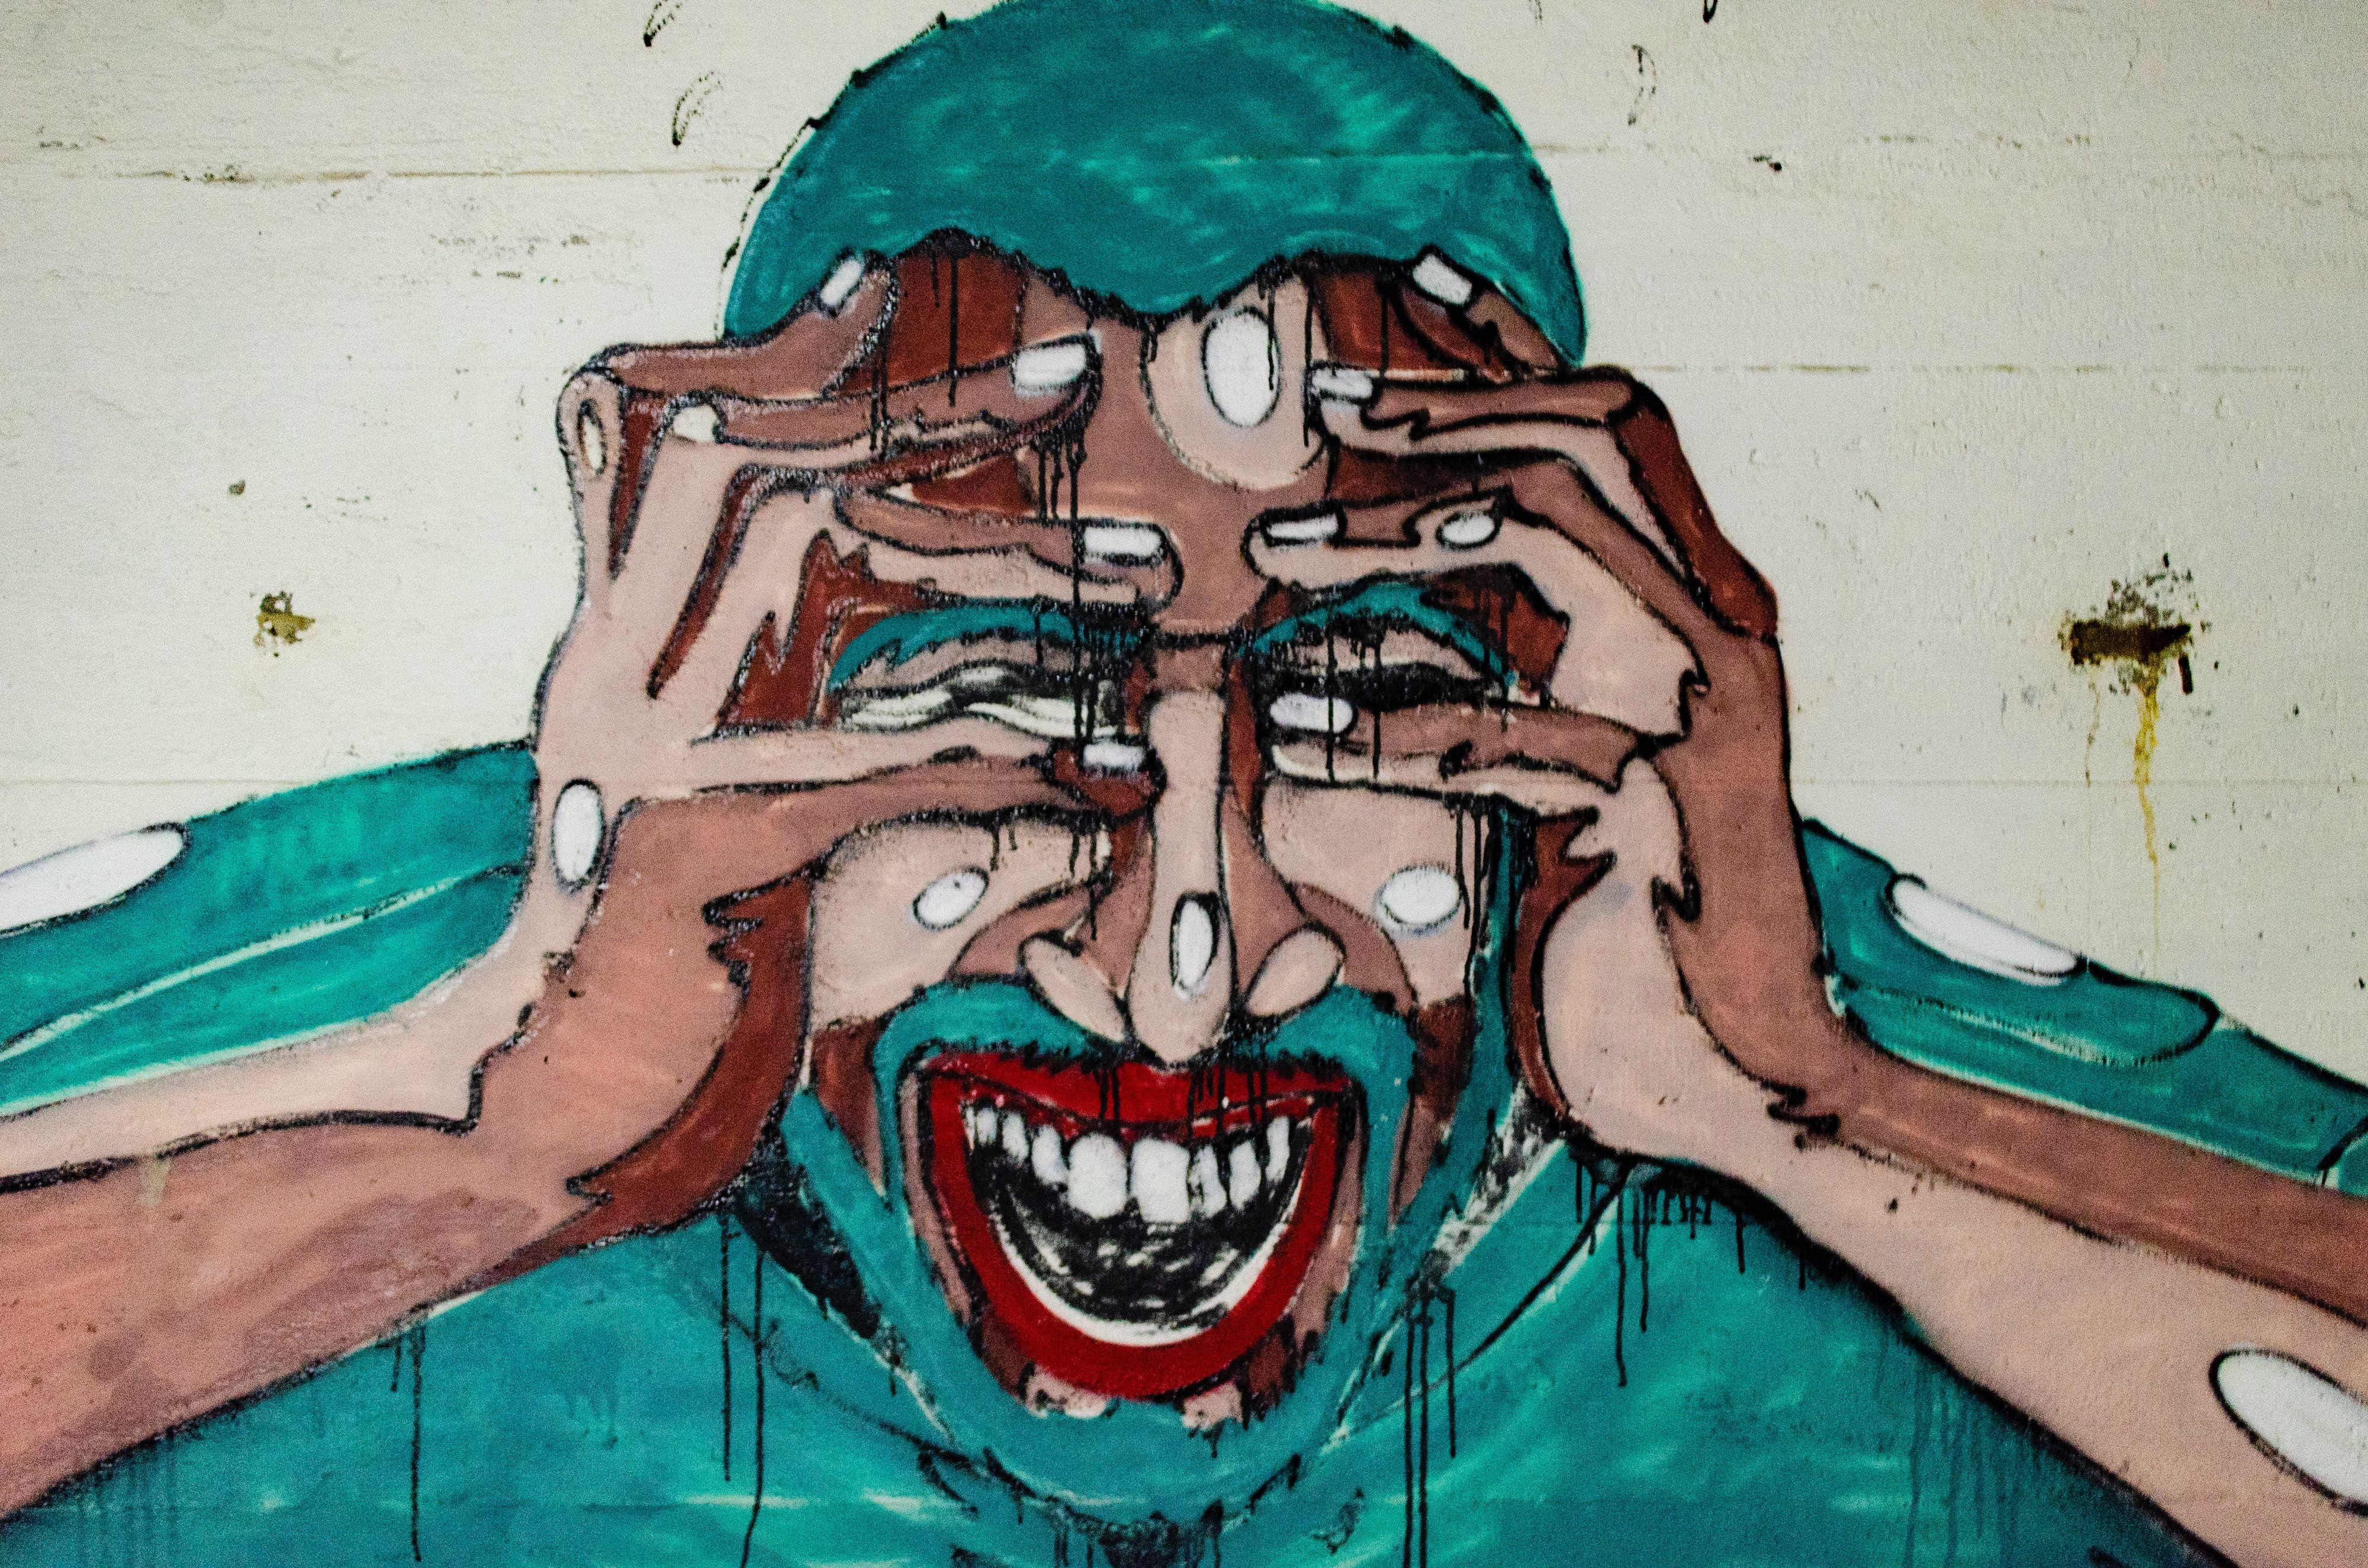 mural of a frightened, fearful man's face grimacing and holding his head